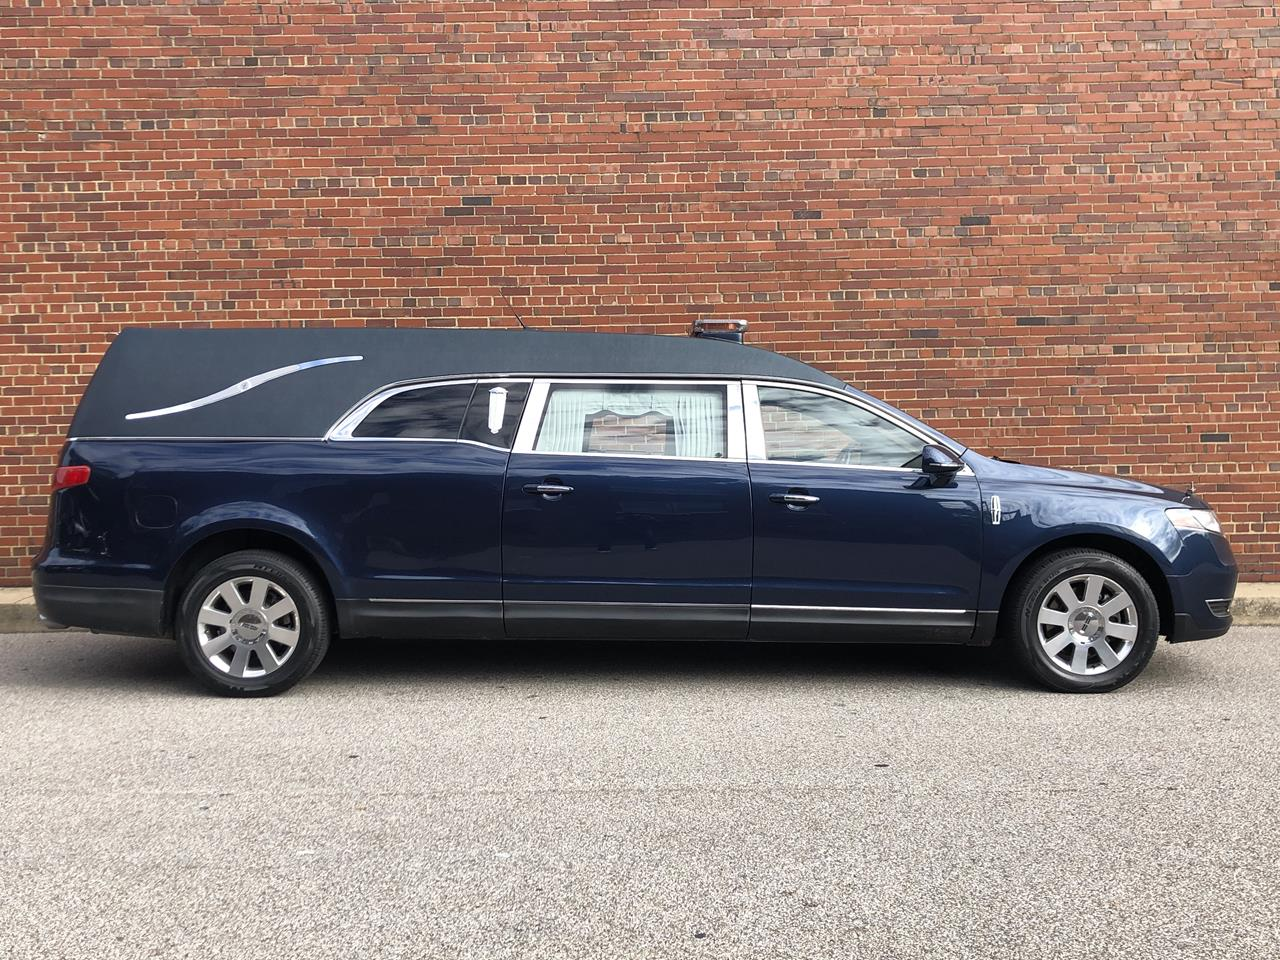 2015 Lincoln Eagle ICON Hearse